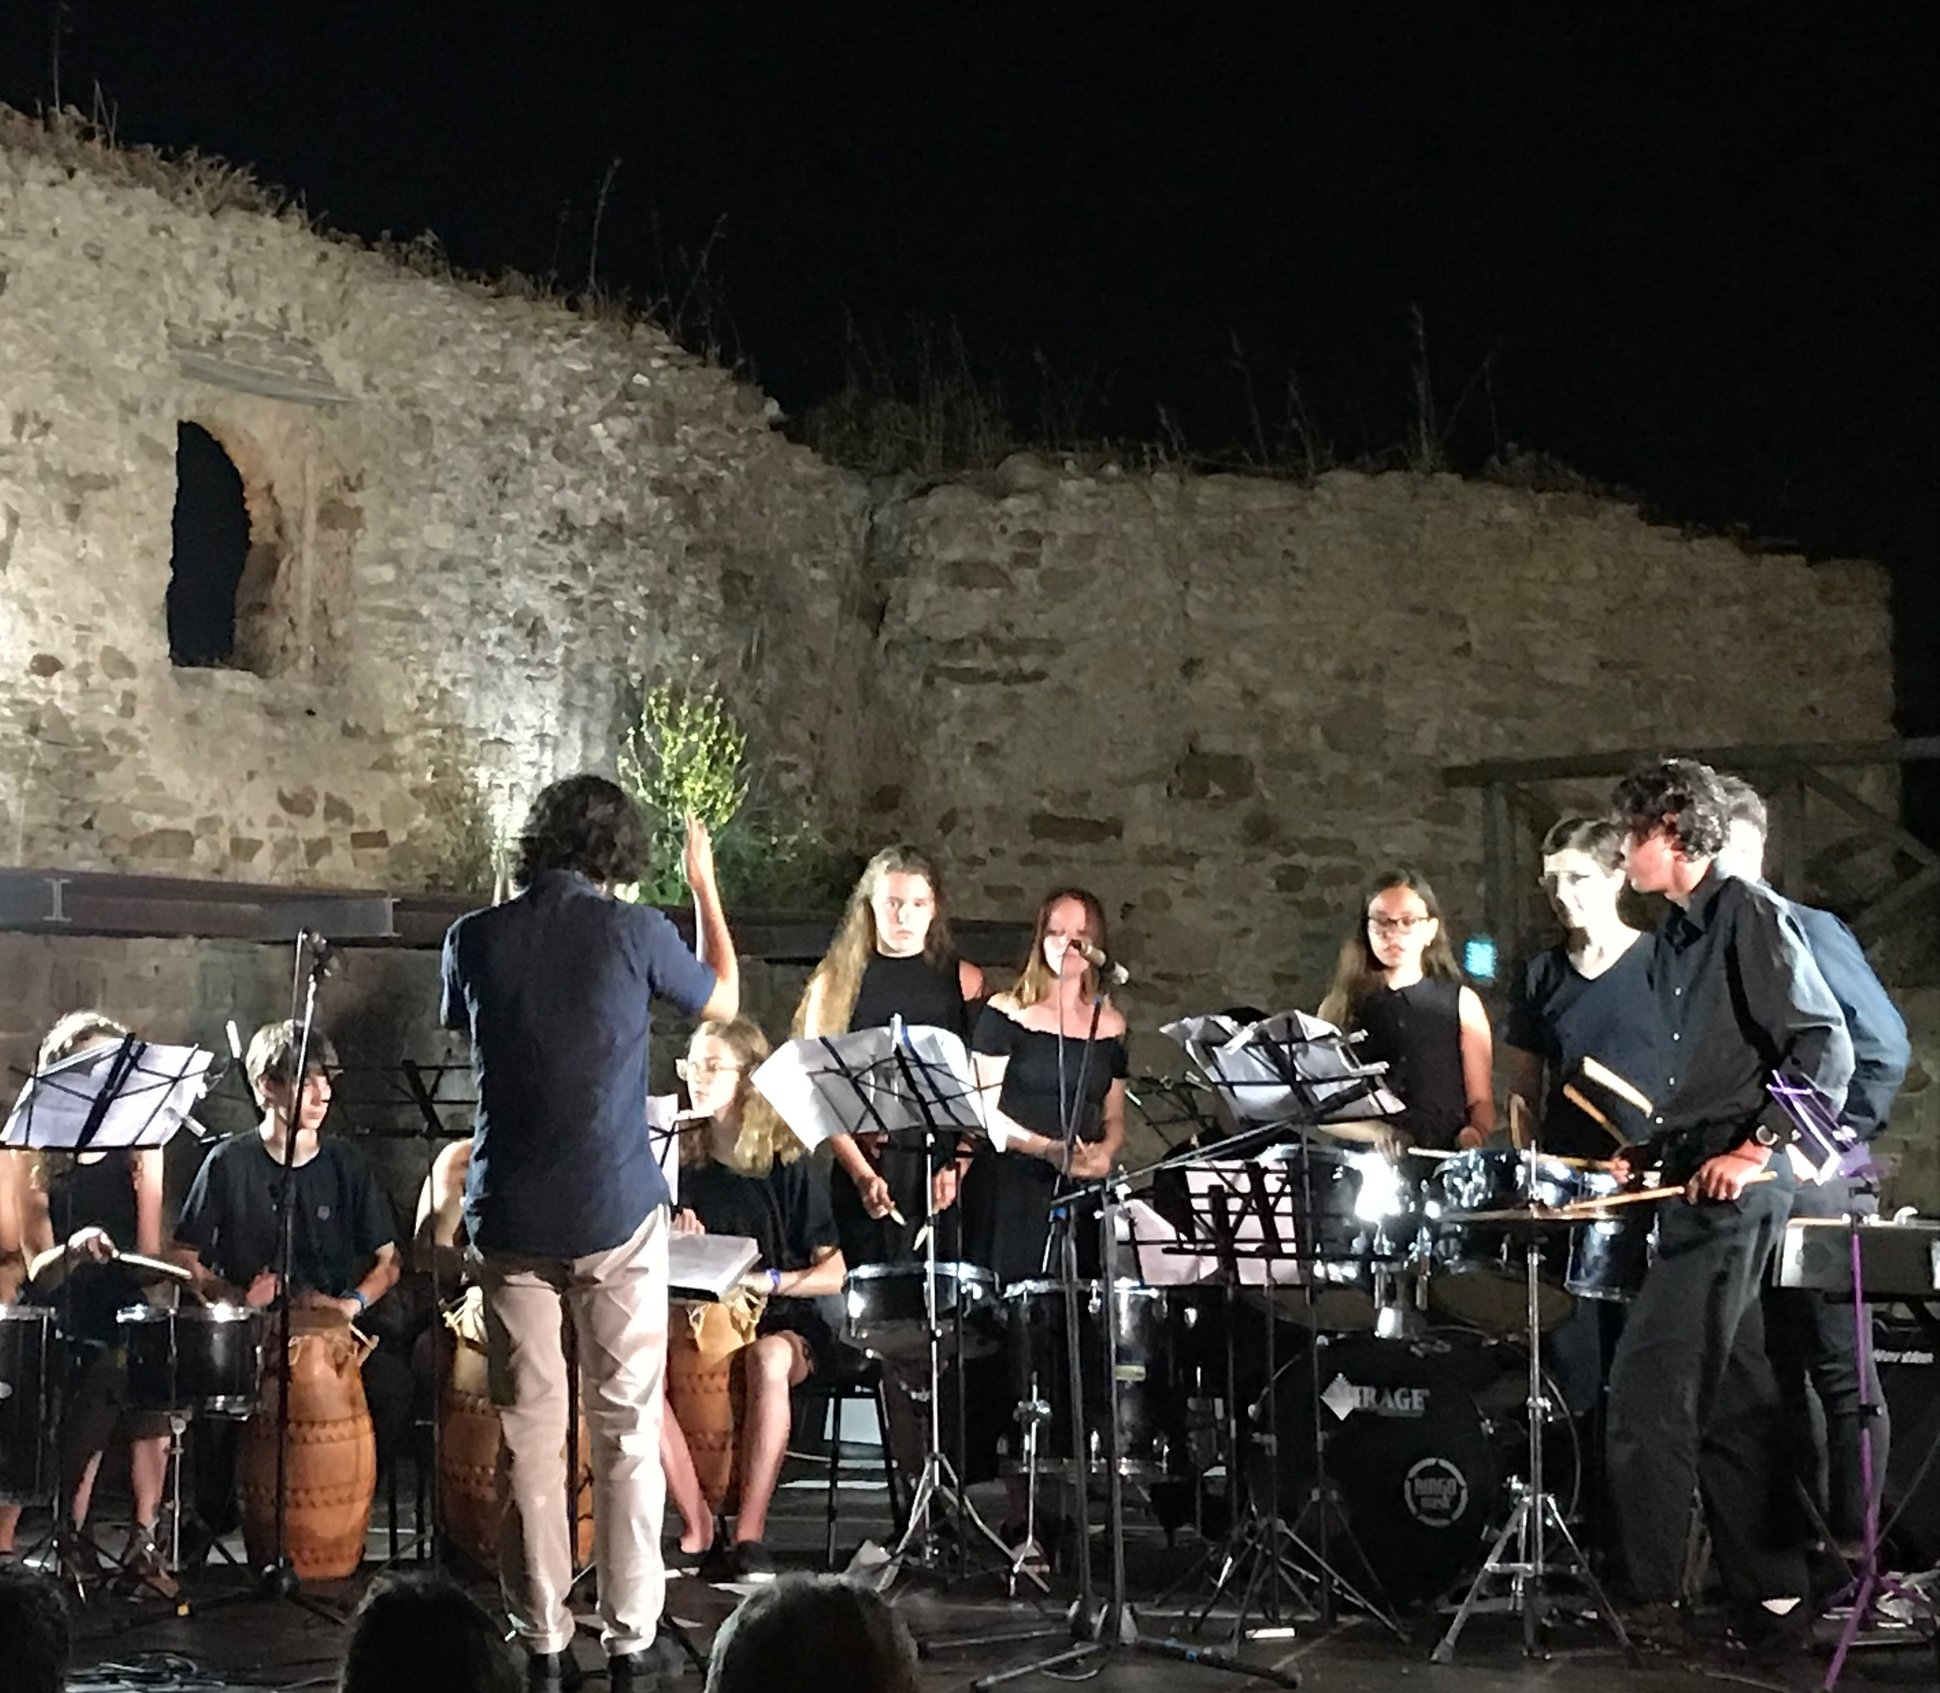 Closing concert at the Castle of Castellabate, Salerno, Italy.